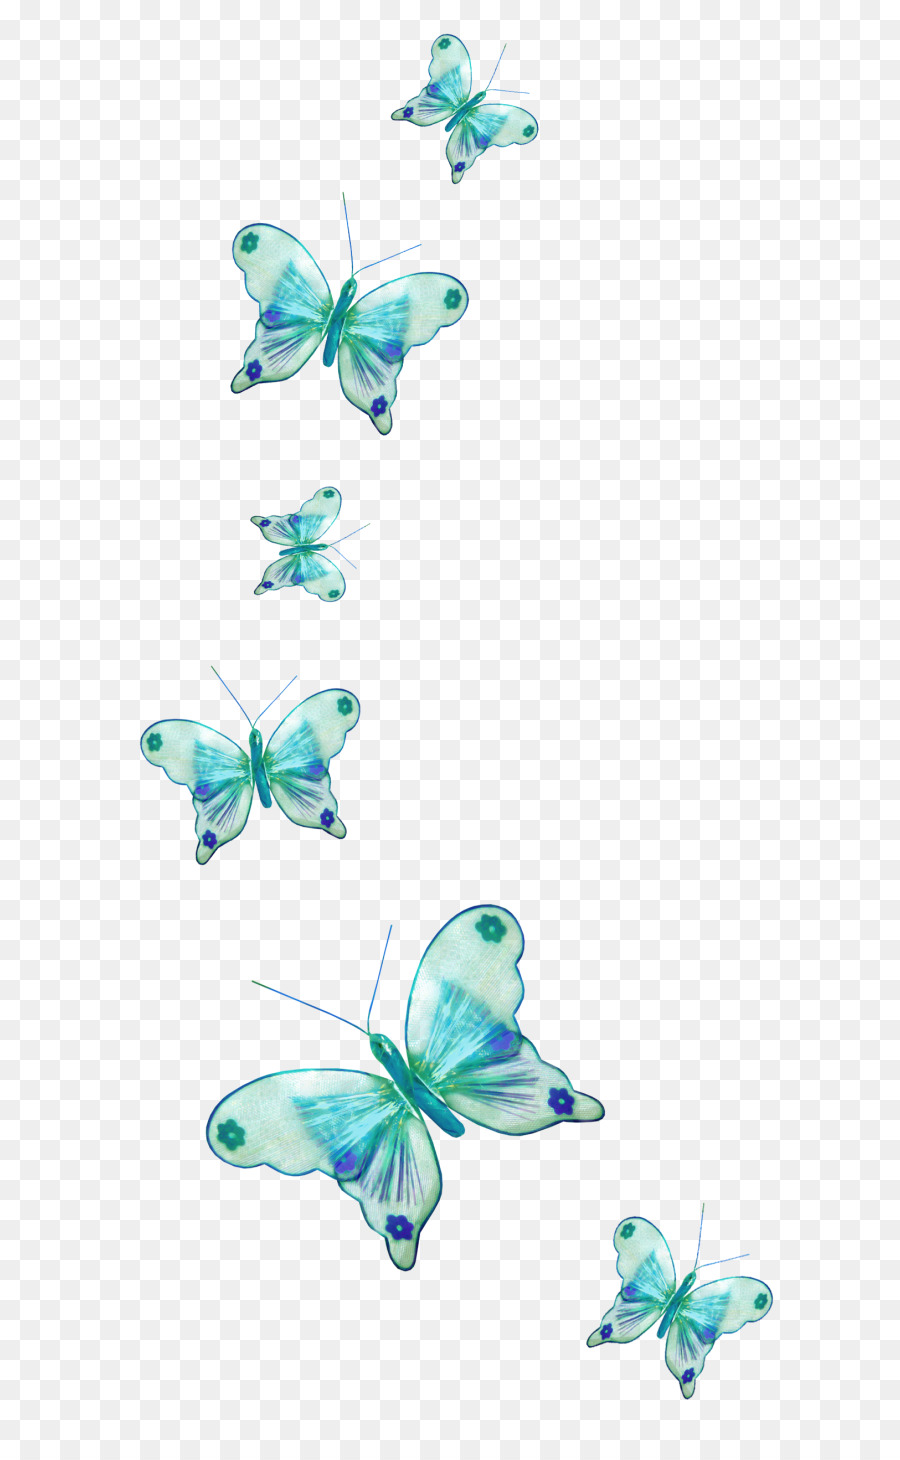 Butterfly Flower Png Download 7001444 Free Transparent